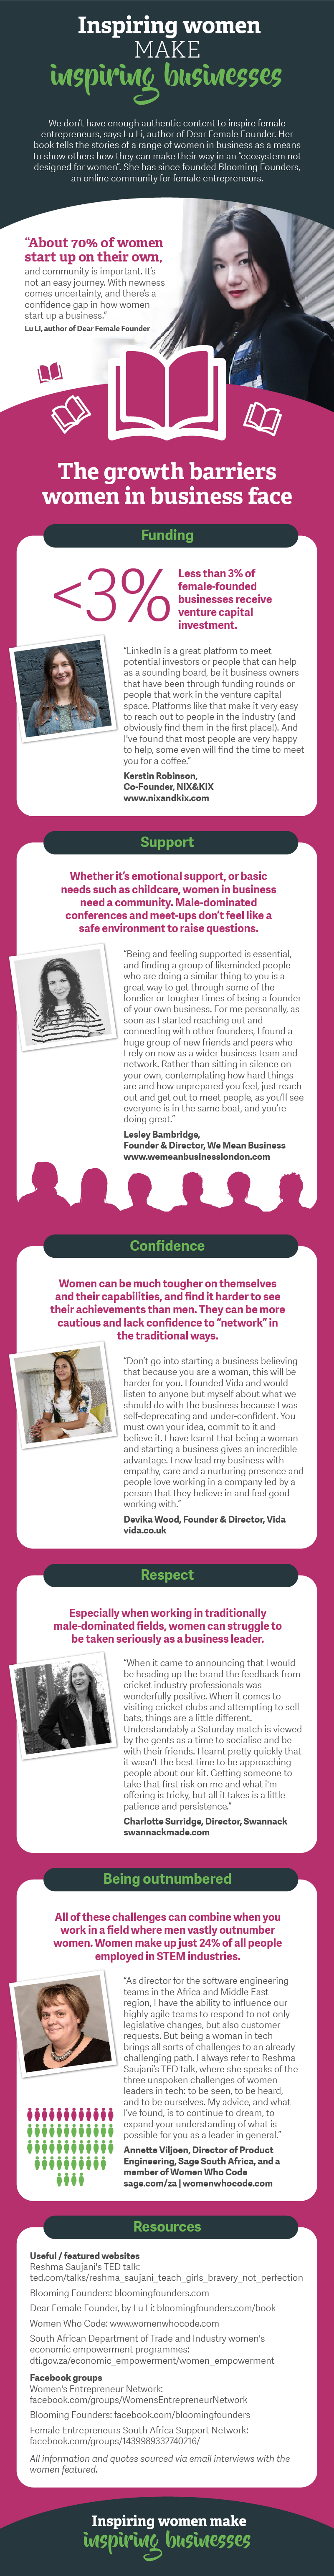 Sage---advice-from-inspiring-women-in-business